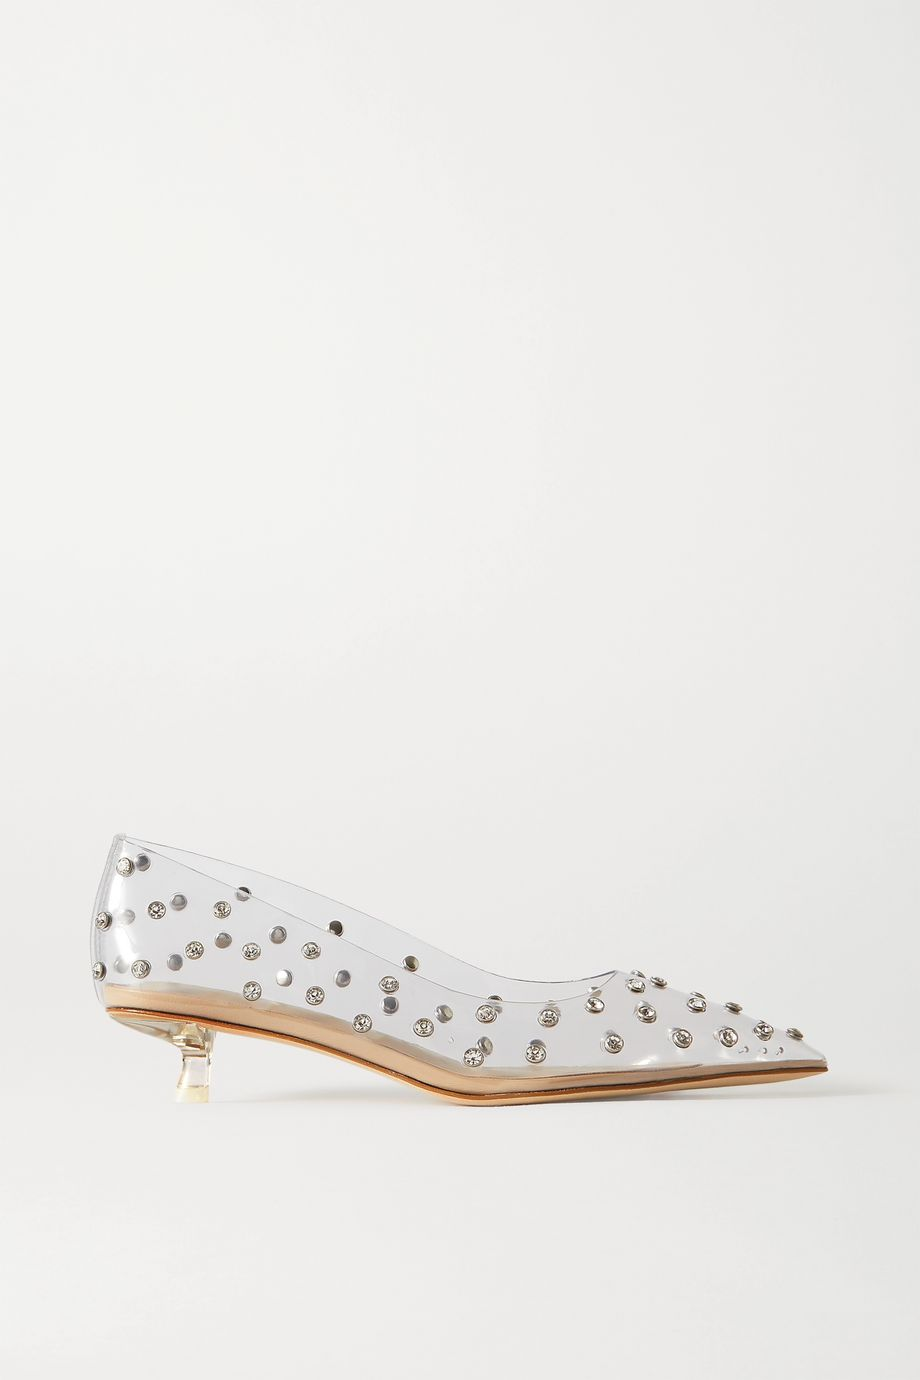 Cult Gaia Roxy crystal-embellished PVC pumps